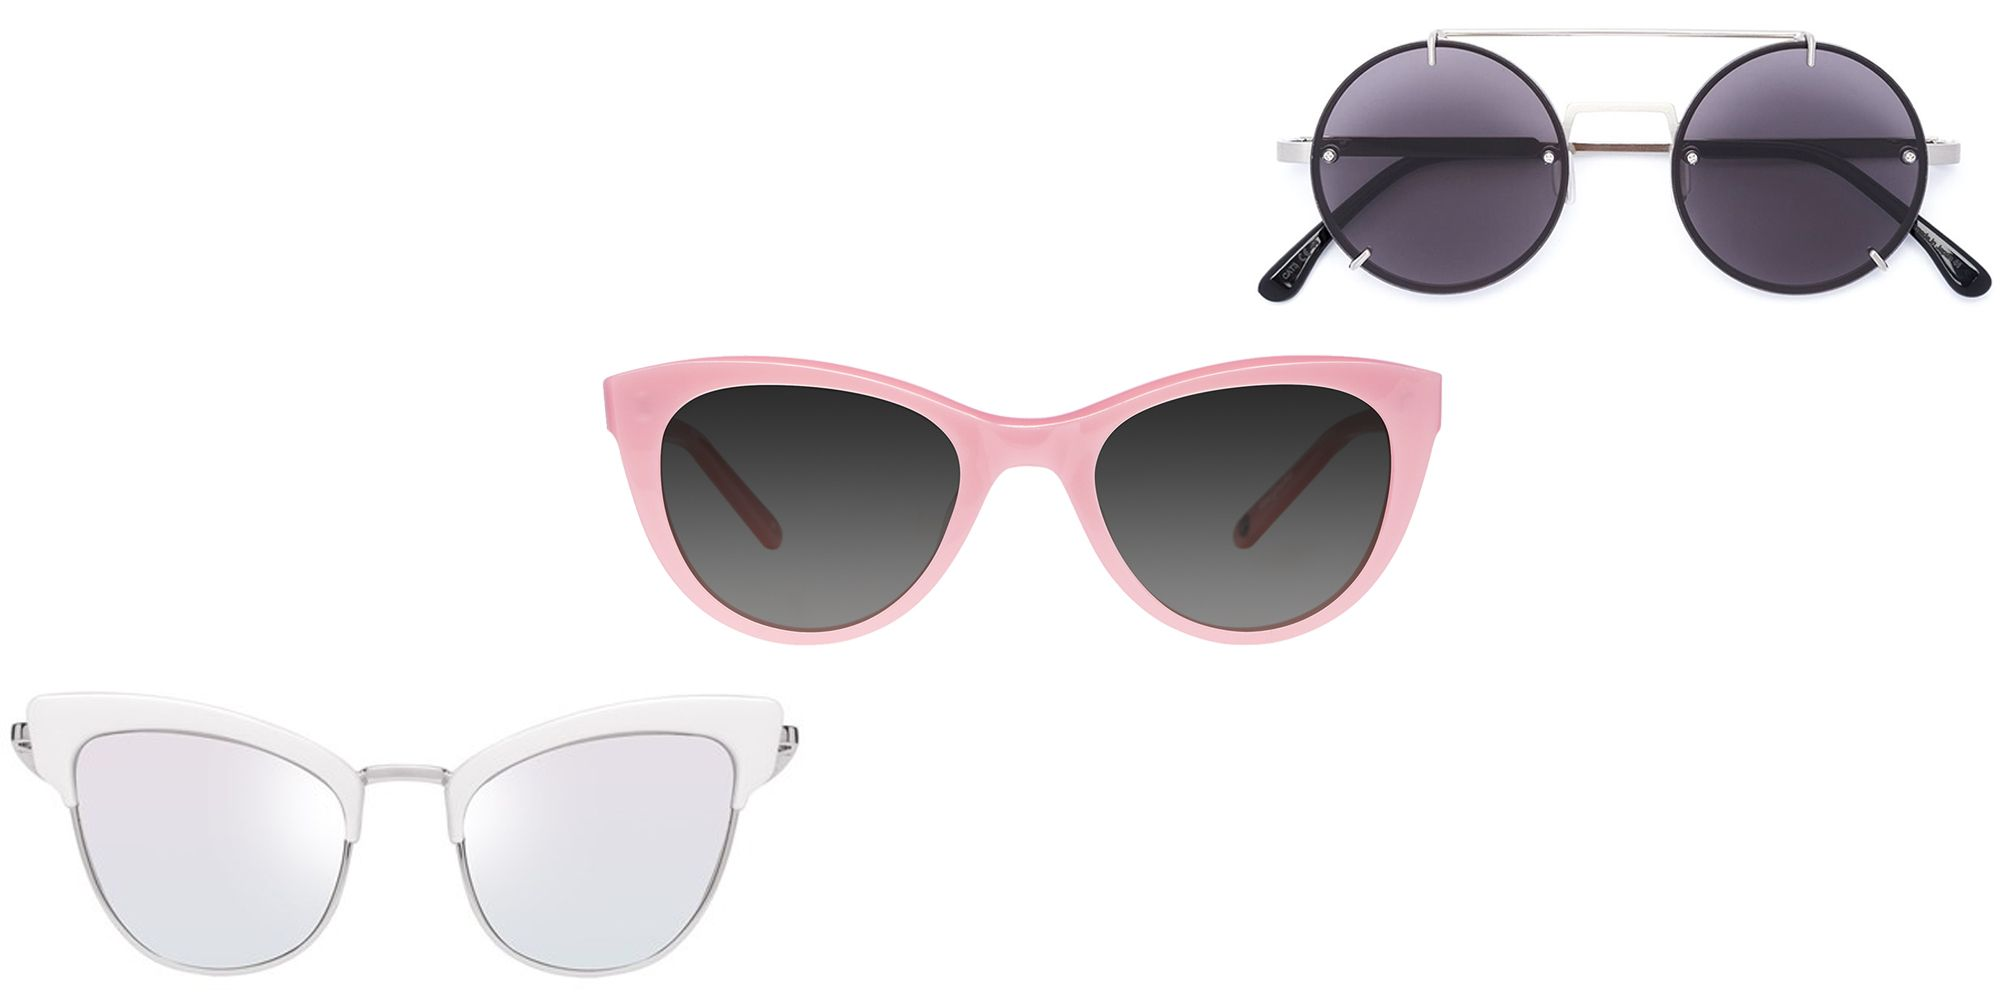 "<p>You're going to need some good shades–and we don't tend to leave home without our favorite pairs. Yes, pairs. One option never seems to feel like enough when there are so many good options out there; and you'll likely want one for work, one for your day out hitting the shops, and another should you choose to hit the beach.</p><p><em data-redactor-tag=""em"" data-verified=""redactor"">From left: Le Specs ""Ashanti"" sunglasses, $119, <a href=""https://lespecs.com/ashanti-1702105-matte-quartz-diamond-mirror-lsl1702105"" target=""_blank"" data-tracking-id=""recirc-text-link"">lespecs.com</a>; Garrett Leight x Clare V. sunglasses, $340, <a href=""http://www.garrettleight.com/sunglasses/clare-v/?130=502&131=380"" target=""_blank"" data-tracking-id=""recirc-text-link"">garrettleight.com</a>; Vera Wang round frame sunglasses, $405, <a href=""https://www.farfetch.com/shopping/women/vera-wang-round-frame-sunglasses-item-11638216.aspx?storeid=9871&from=1&rnkdmnly=1&ffref=lp_pic_74_11_"" target=""_blank"" data-tracking-id=""recirc-text-link"">farfetch.com</a>.</em></p>"